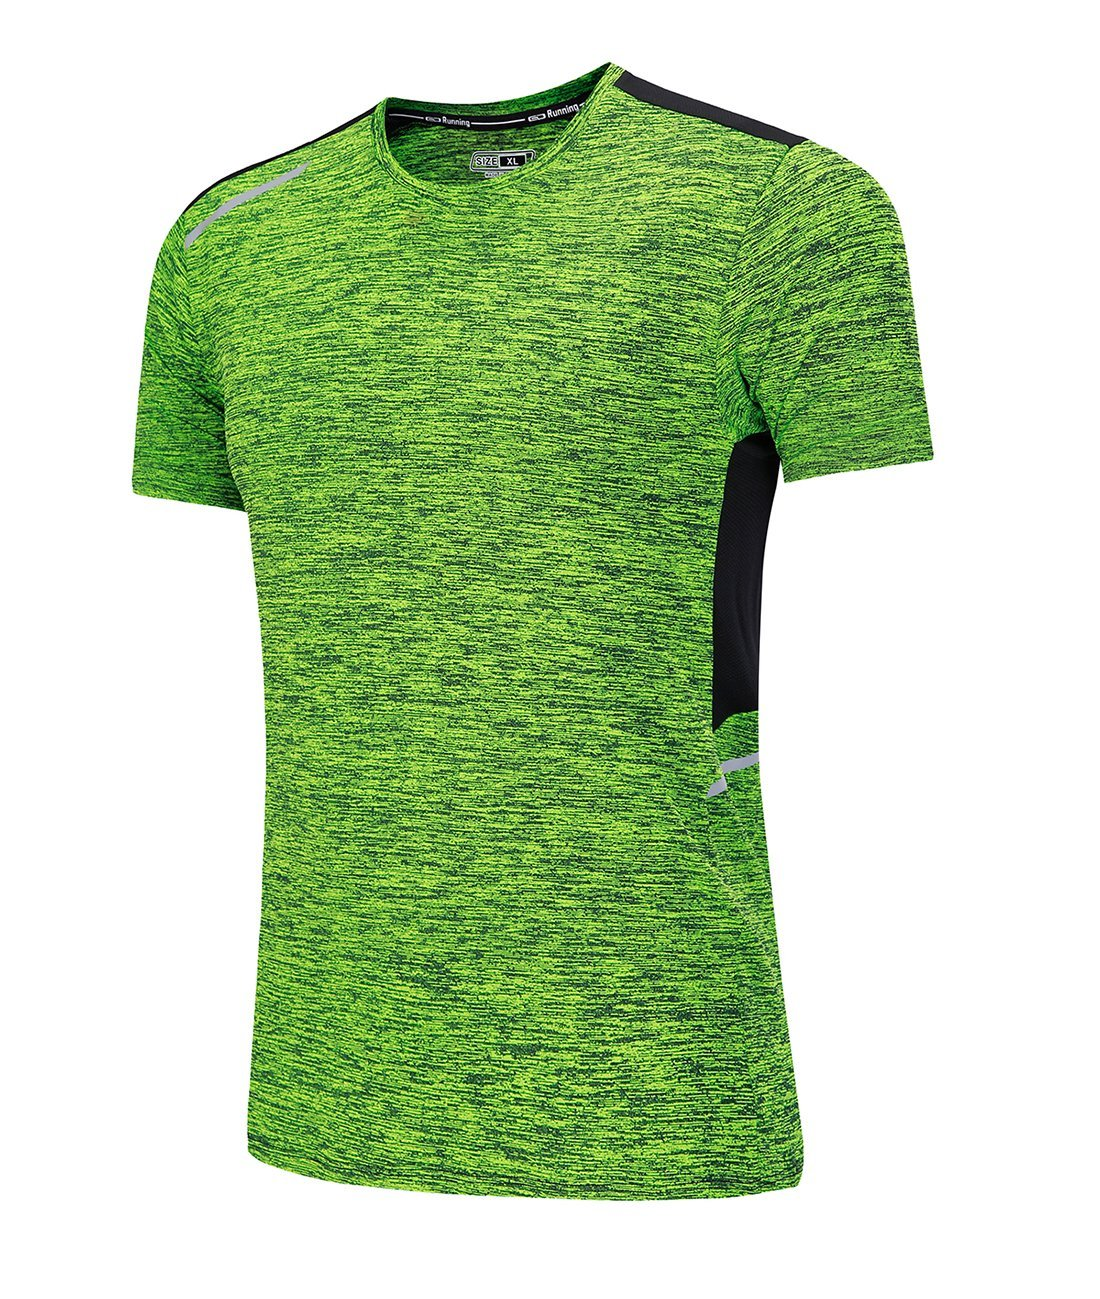 LYZ Mens Pullover Short Sleeve Quick Dry Workout Sport T-Shirts Running Tops Sweatshirts